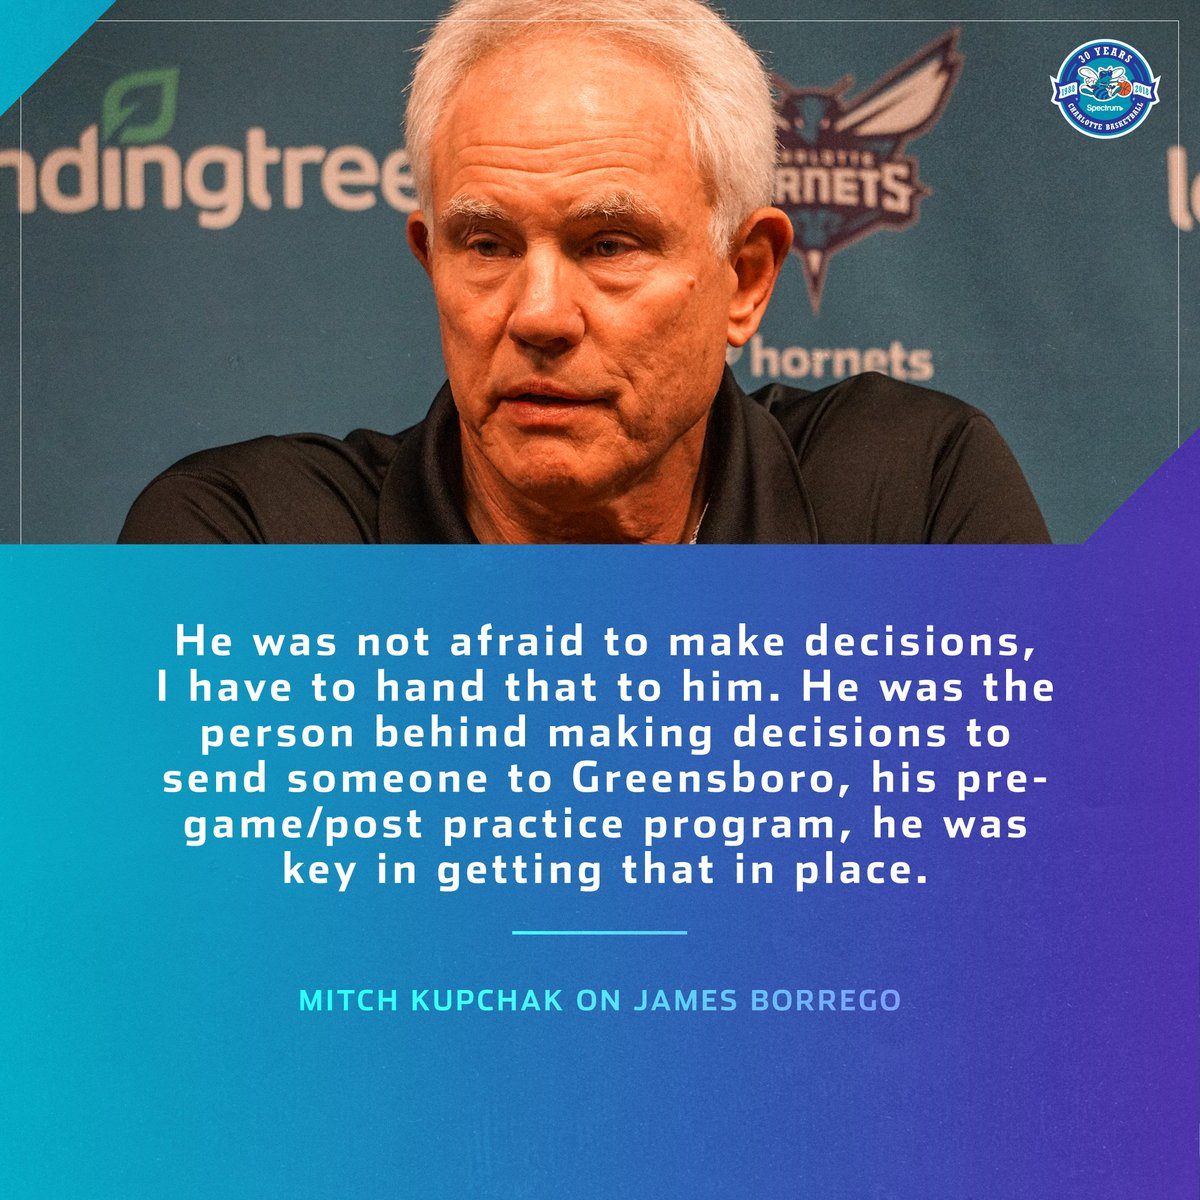 Hornets GM Mitch Kupchak on the great first year the James Borrego had as Hornets head coach. #hornets30